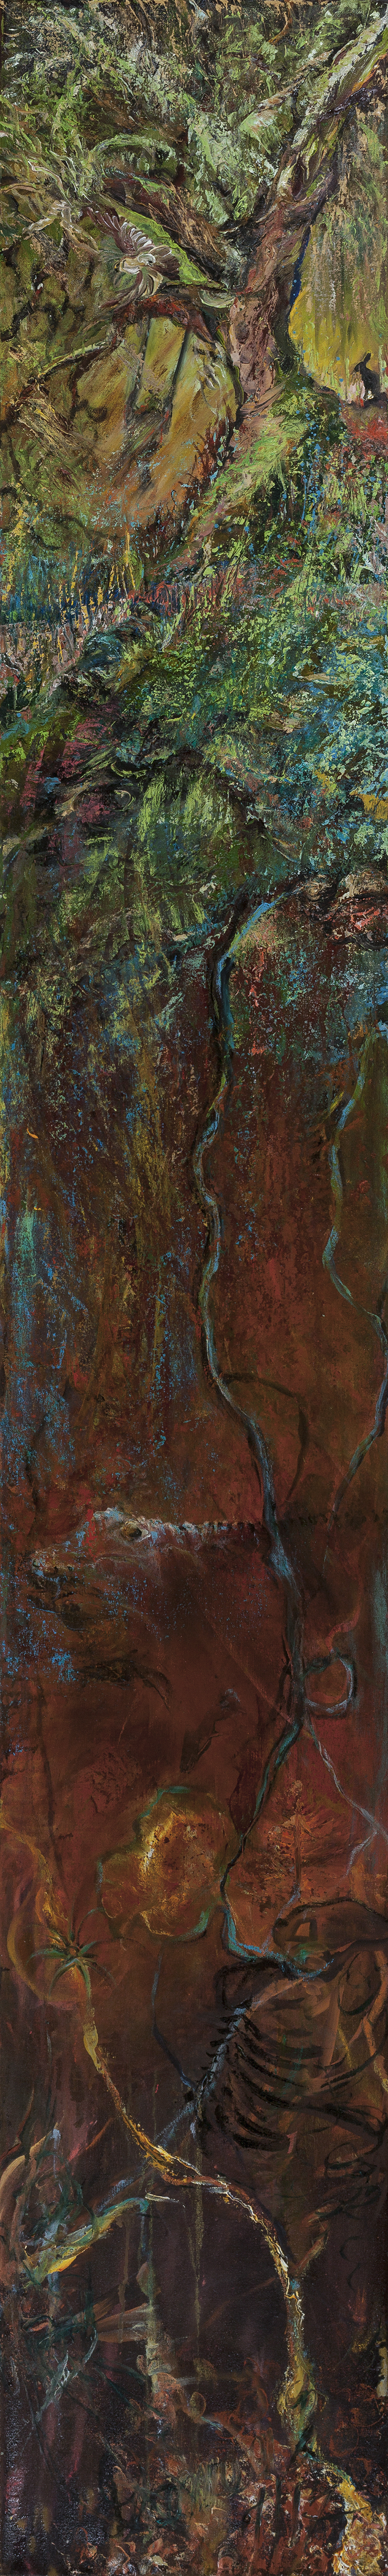 oil painting, poetry sourced, underground space, lost time, timeliness